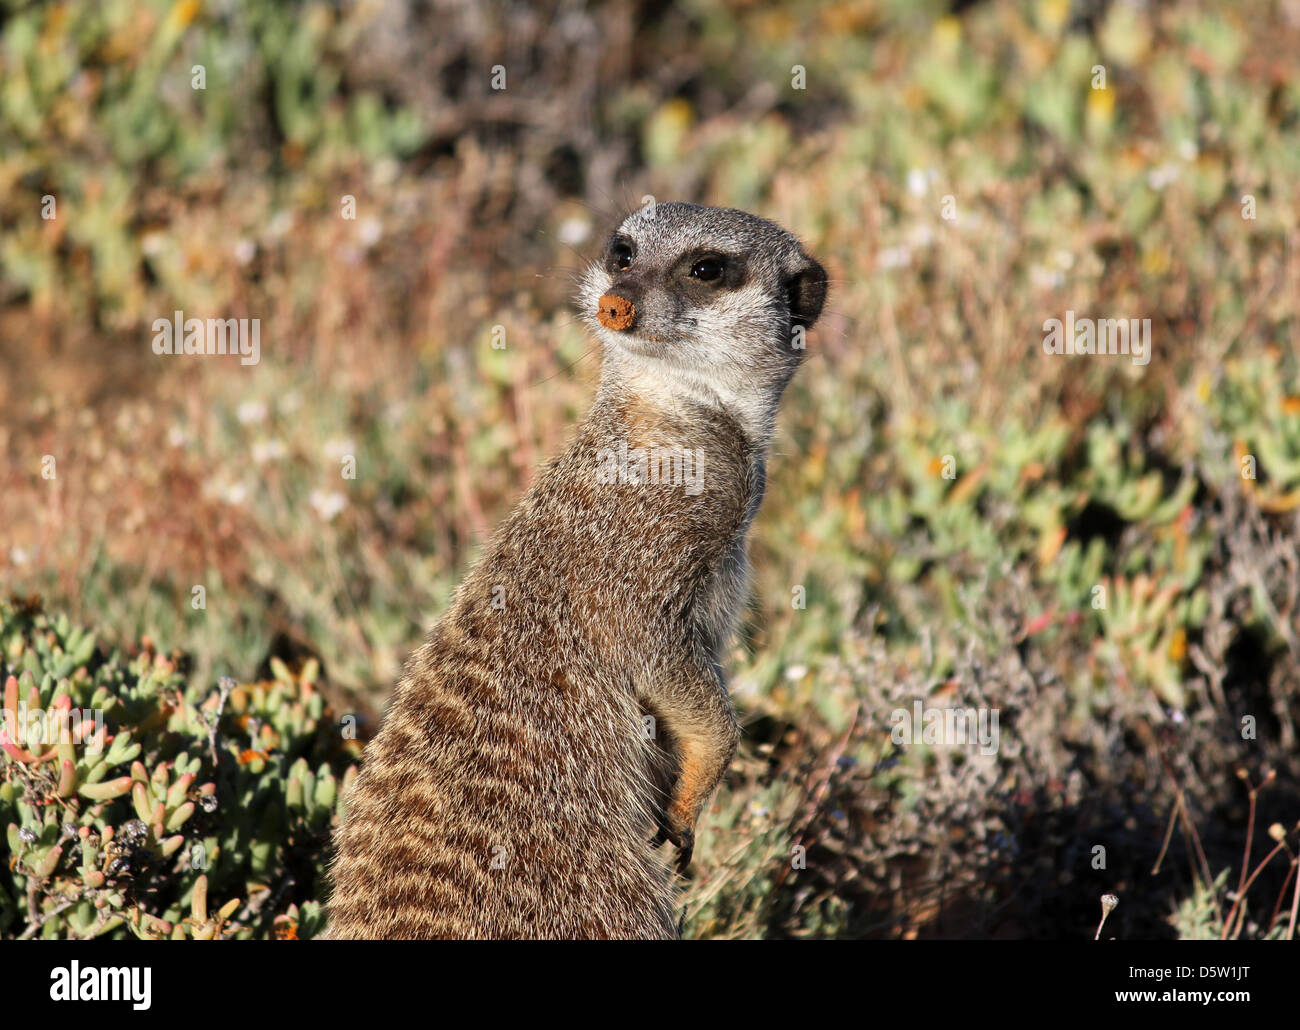 Meerkat, early morning in Little Karoo, South Africa - Stock Image